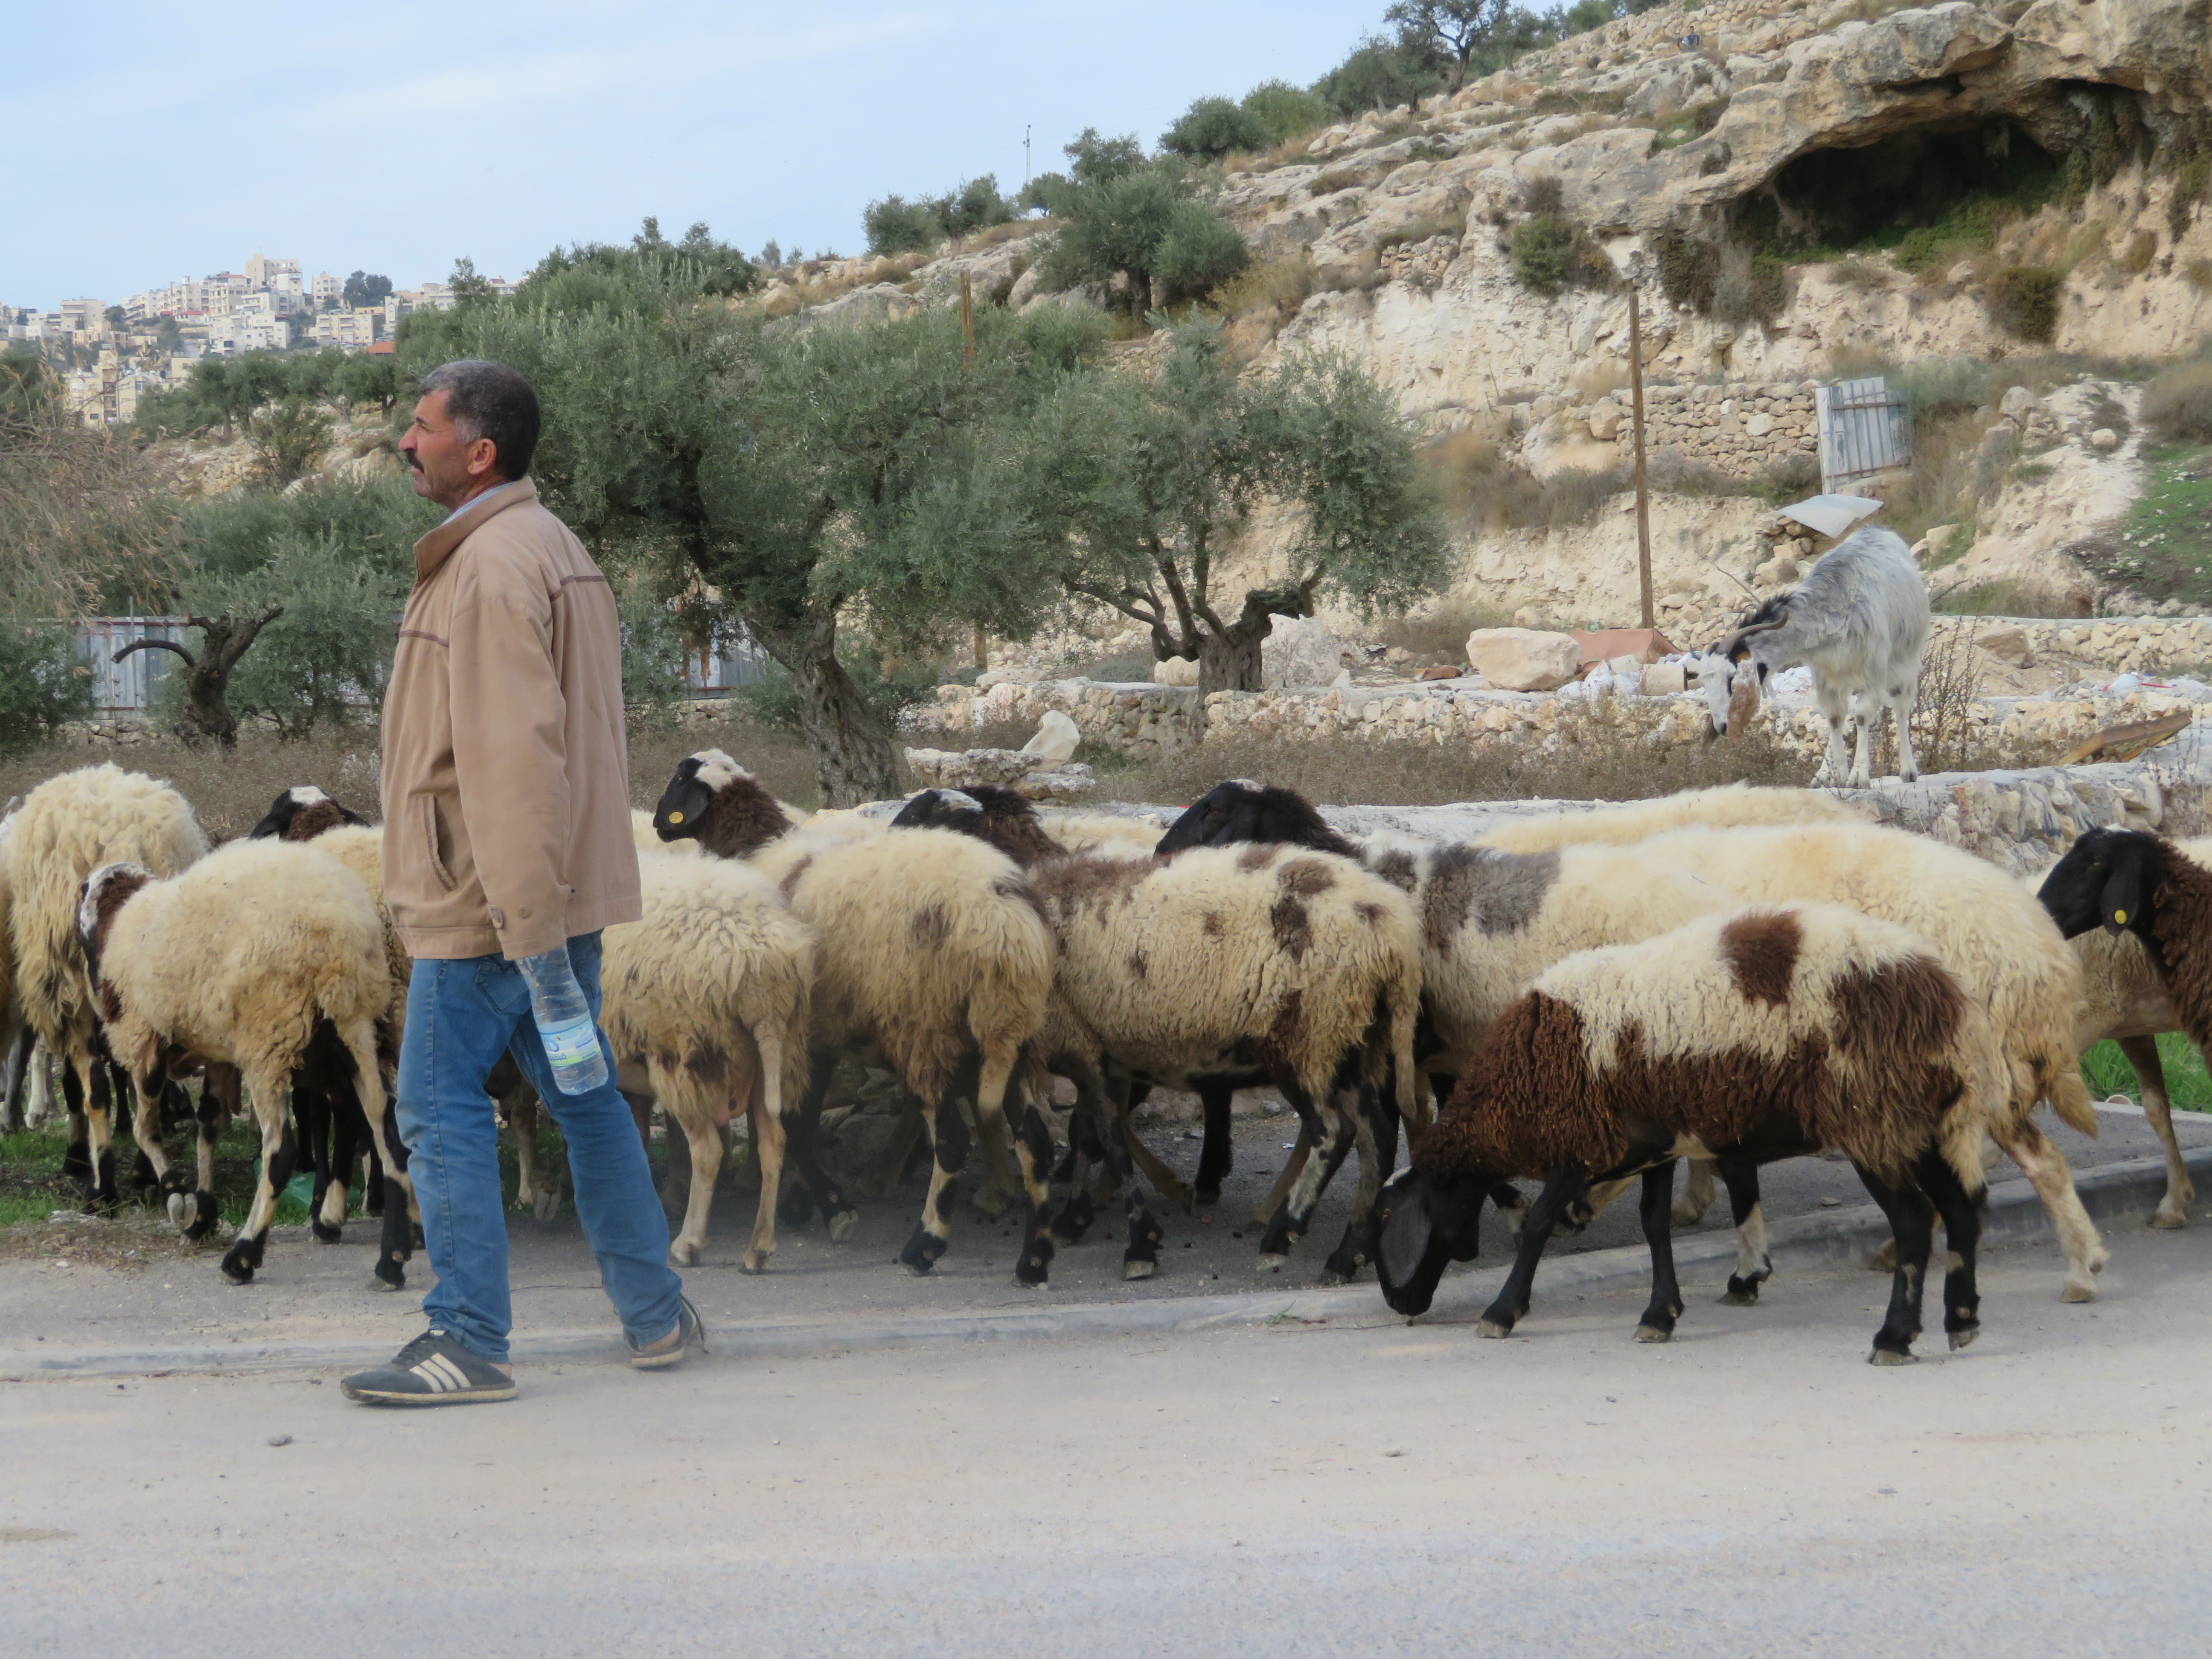 A modern day shepherd and his flock, in the valley of the shepherds, near to Bethlehem.